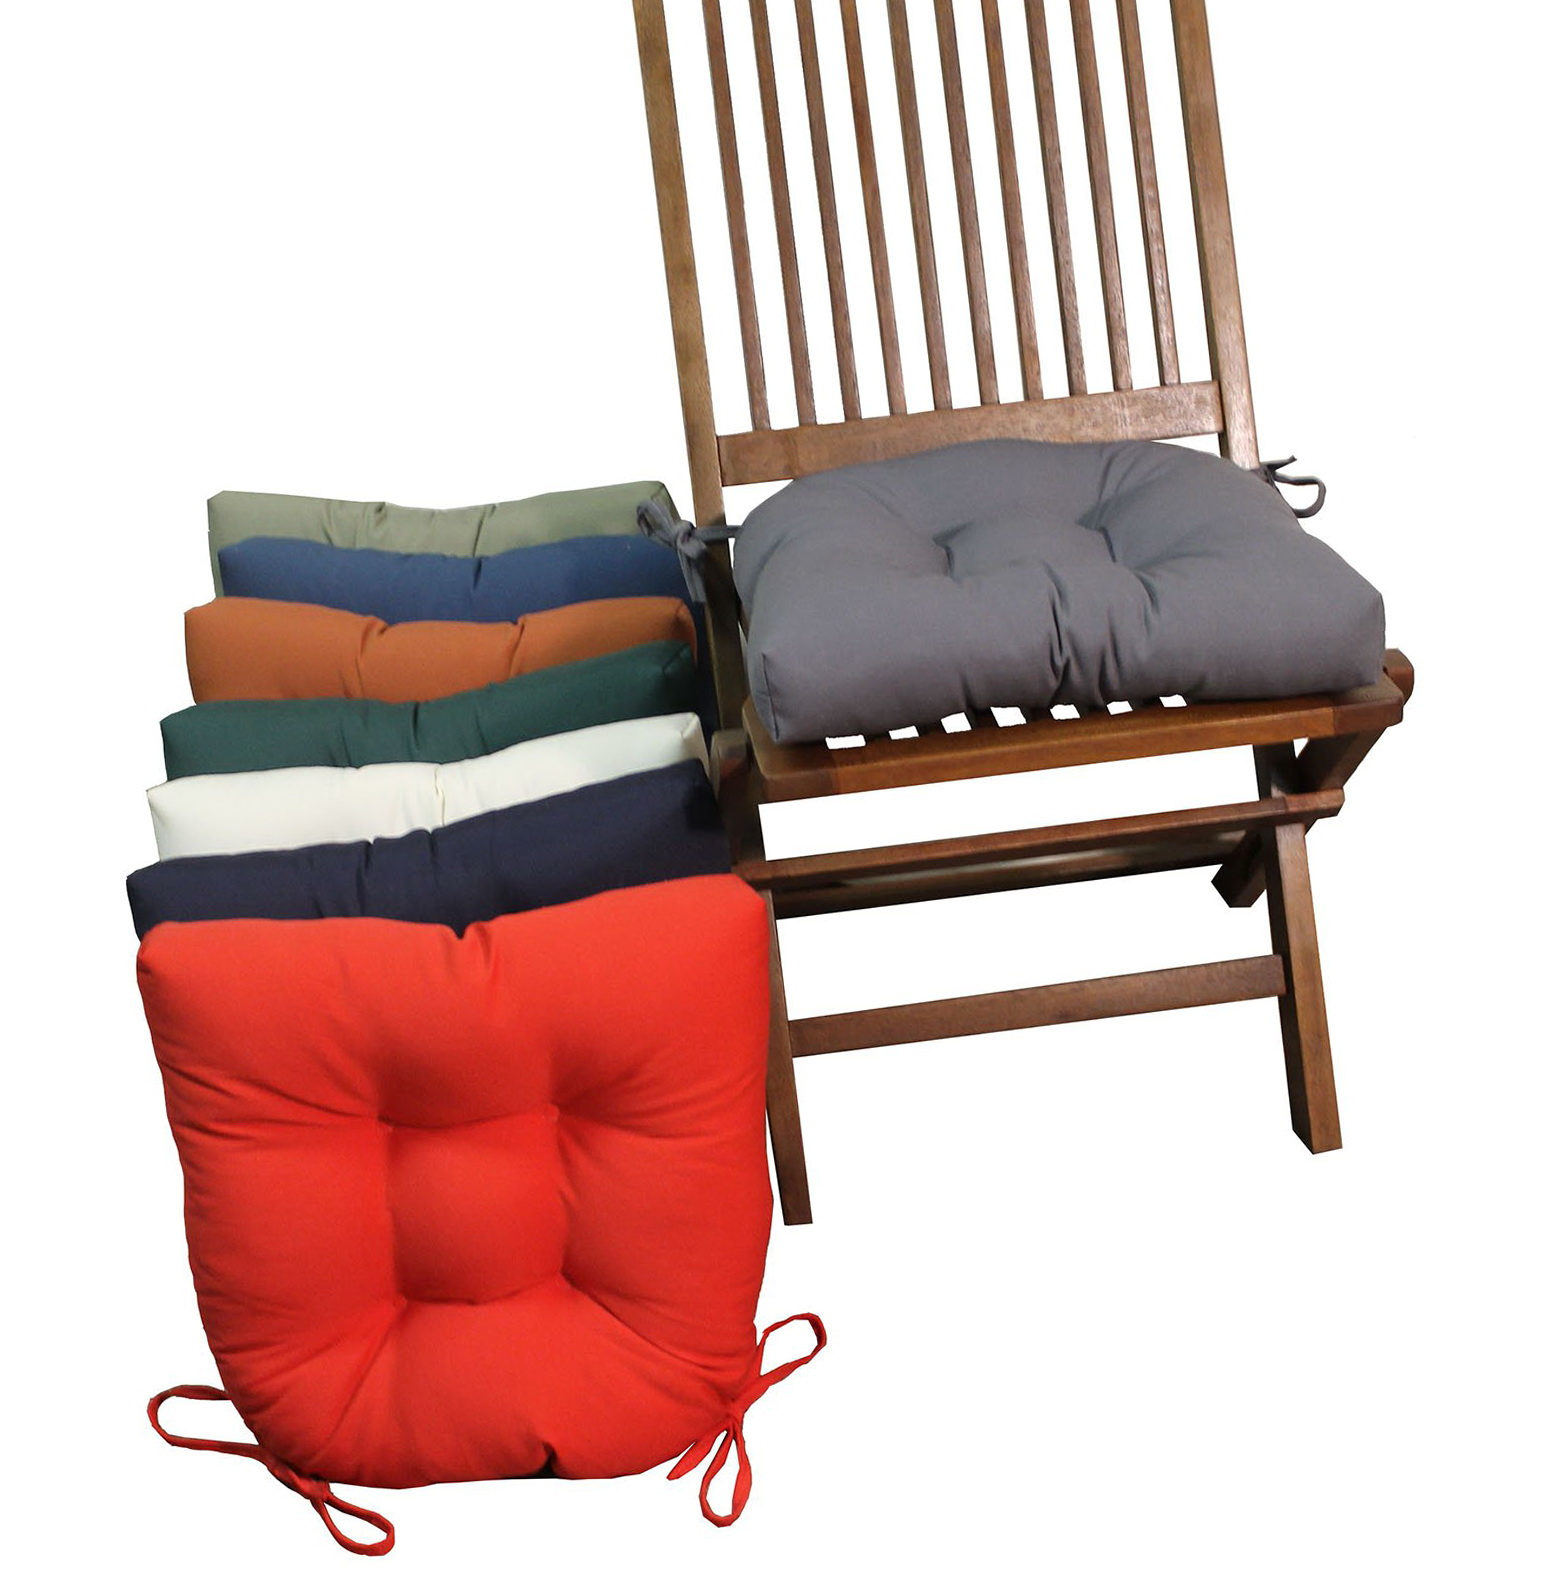 ikea rocking chair outdoor plastic wood adirondack chairs cushions with ties home design ideas